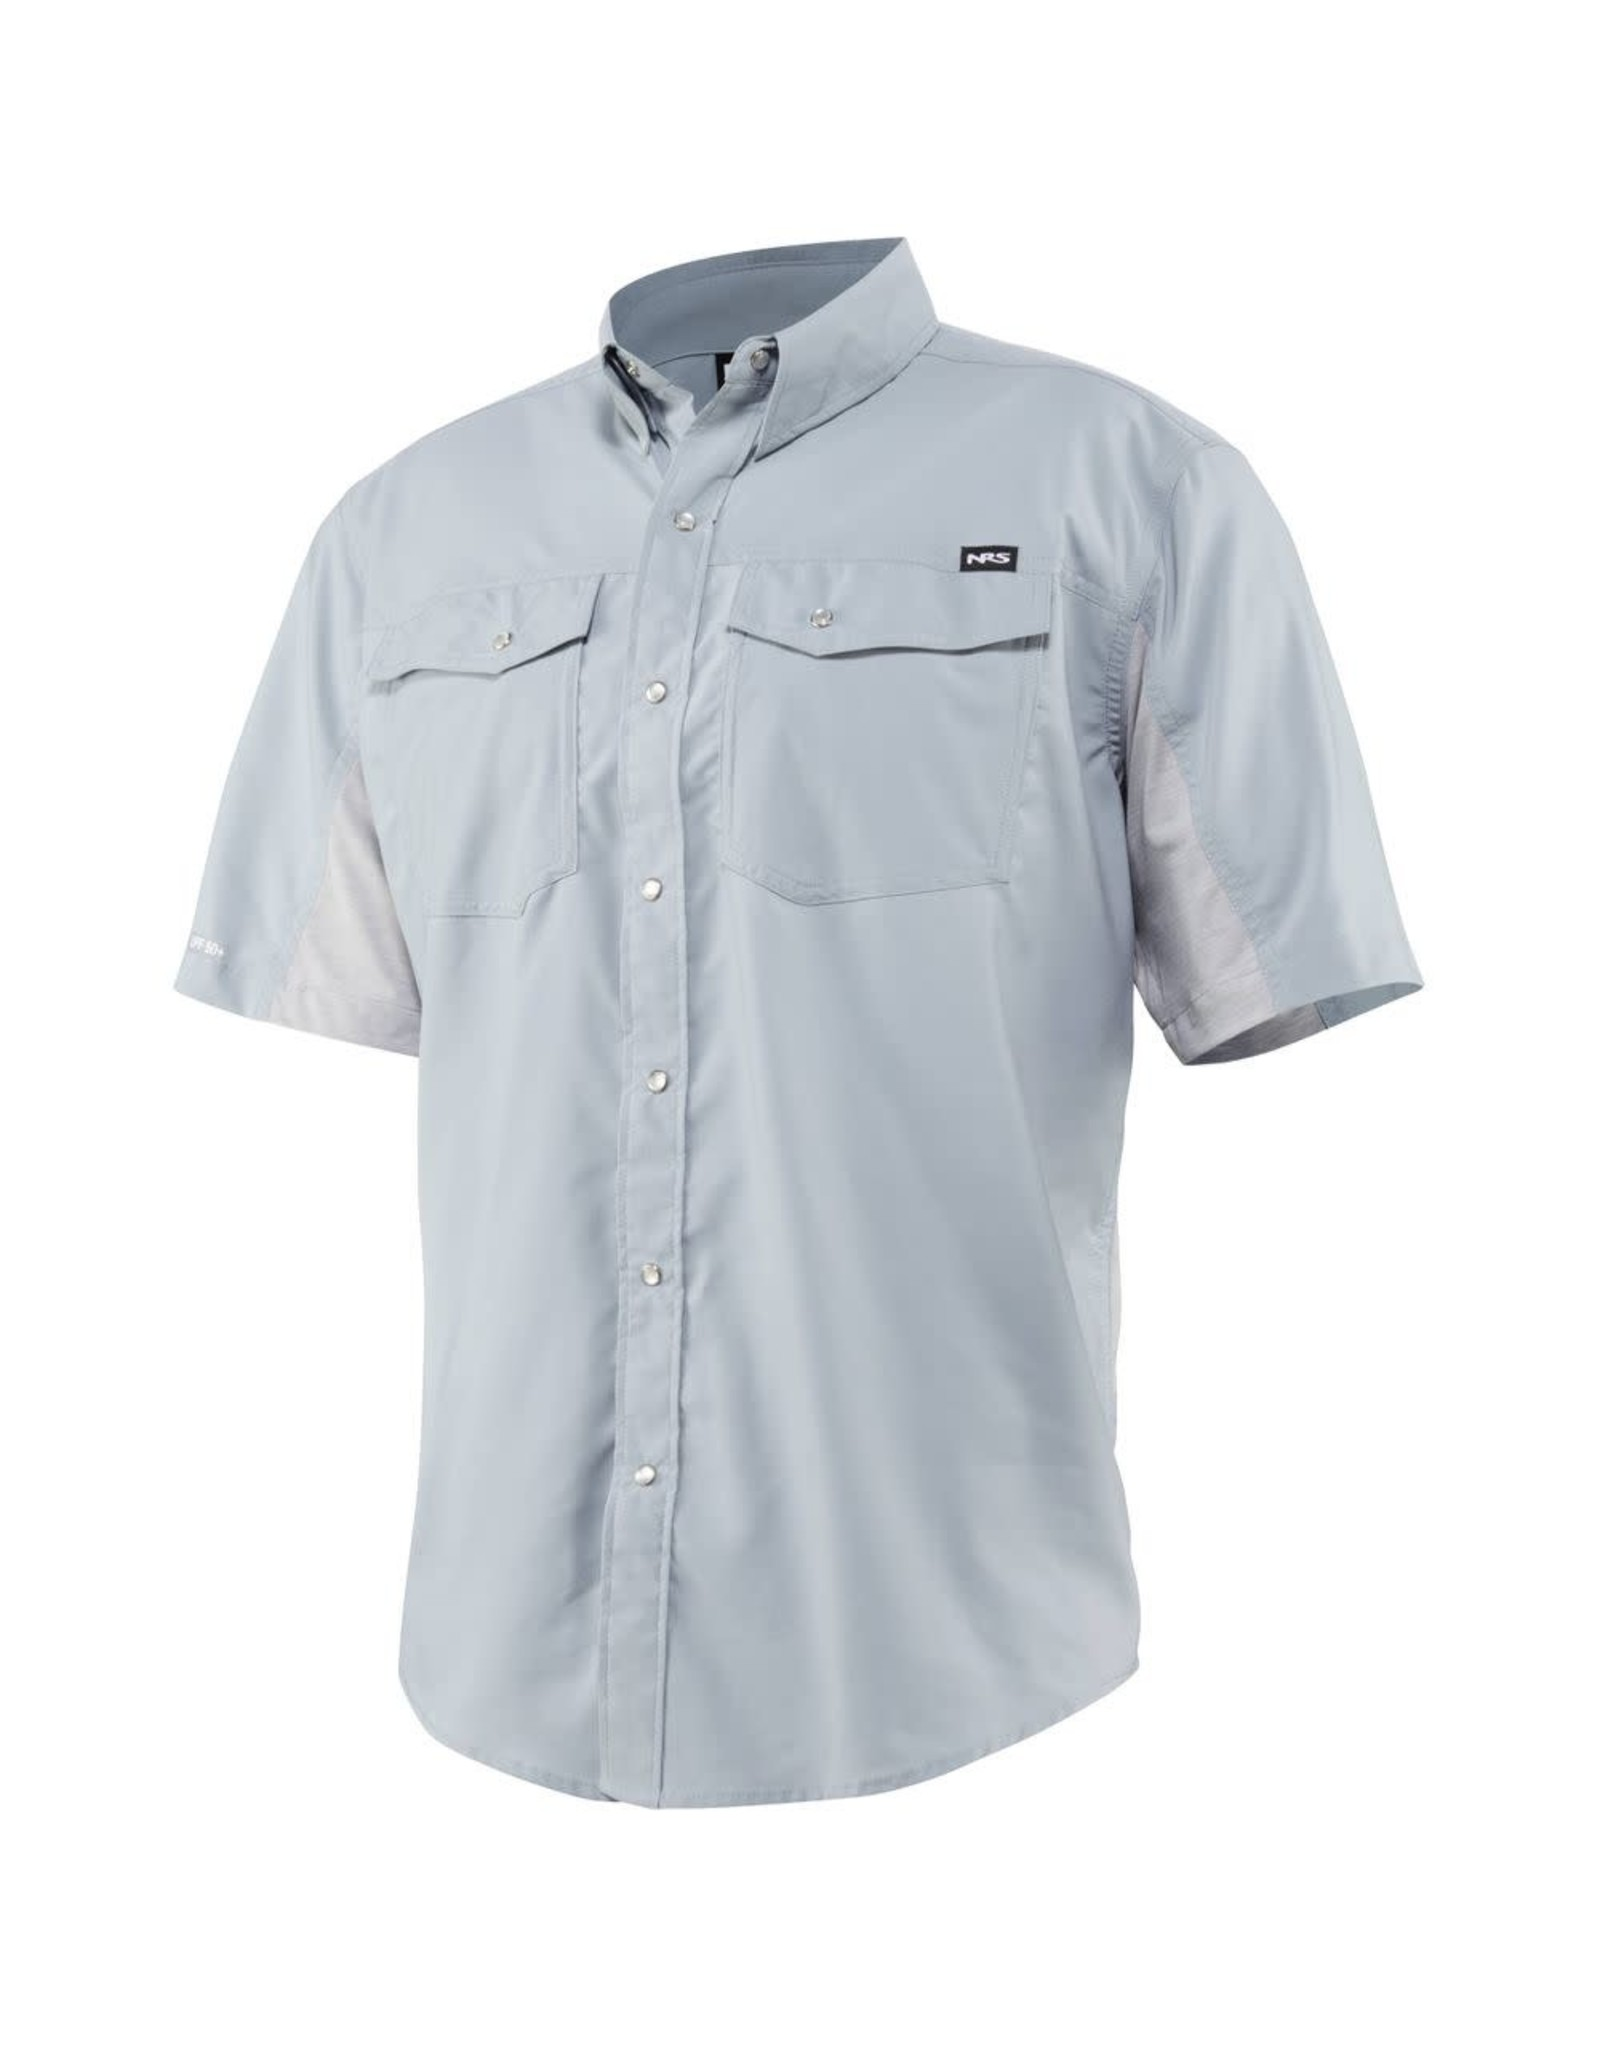 NRS NRS Men's Short-Sleeve Guide Shirt